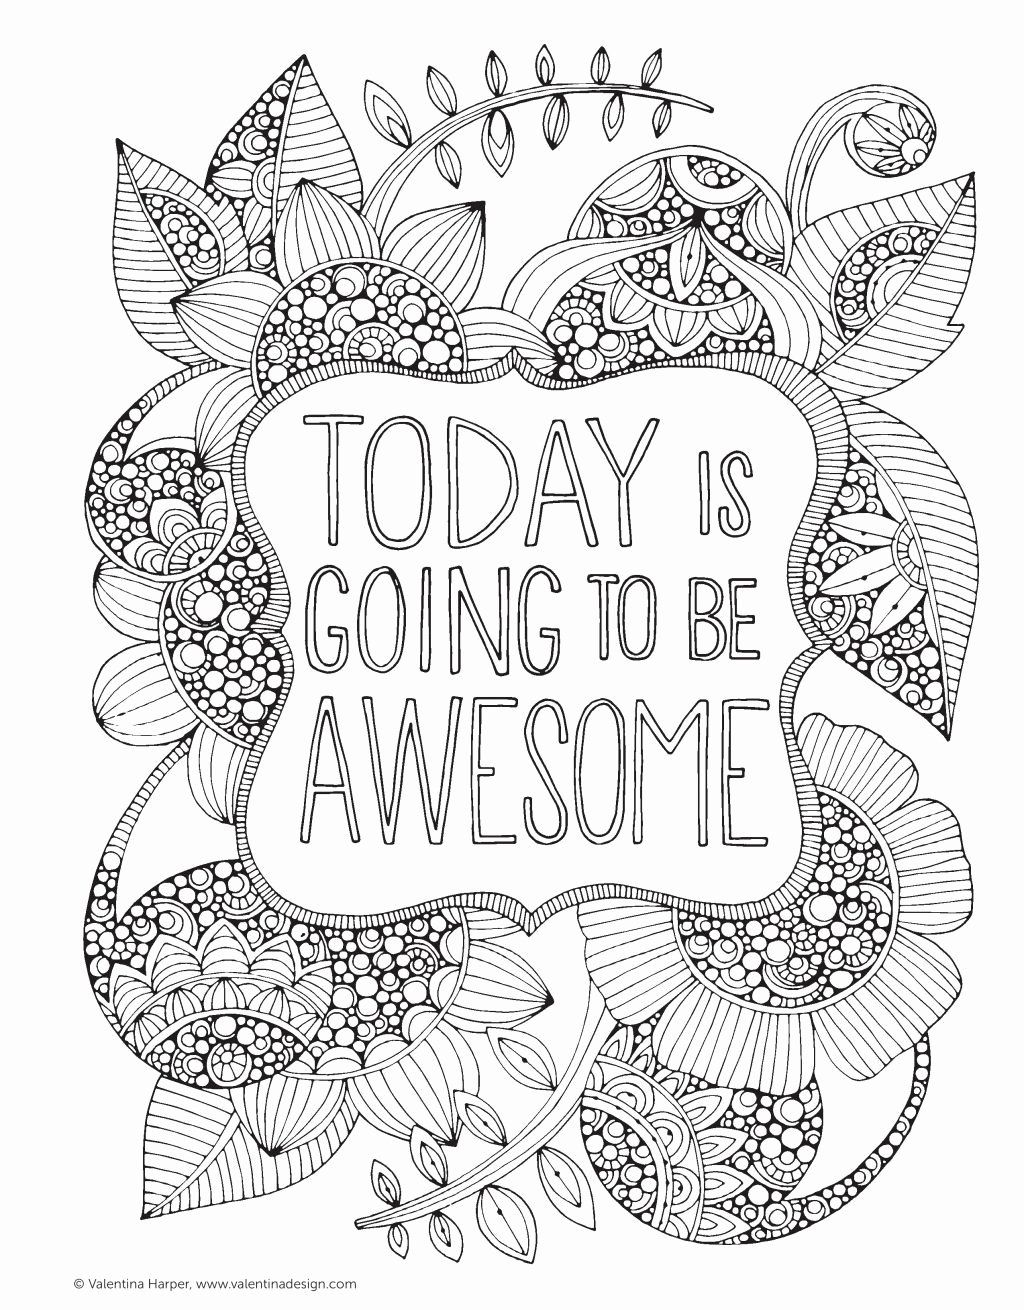 Printable Intricate Coloring Pages Inspirational Coloring Pages 63 Intricate Coloring Sheets I Detailed Coloring Pages Cool Coloring Pages Quote Coloring Pages